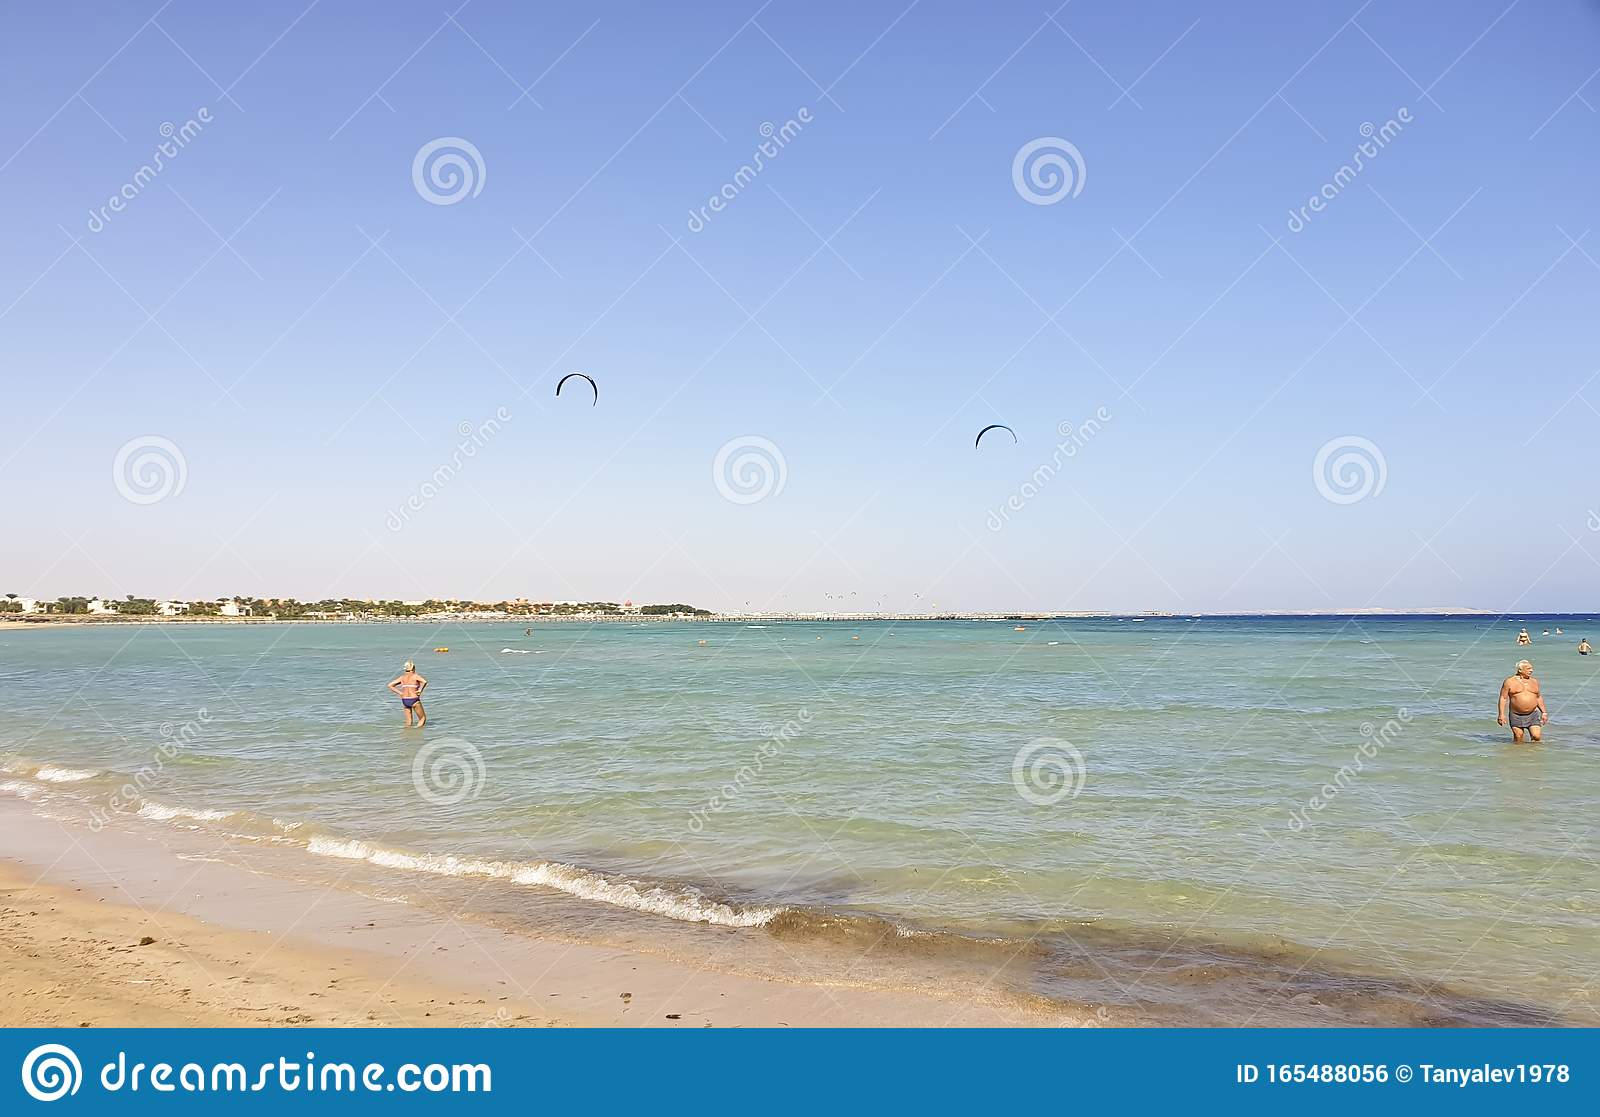 November 1 2019 Egypt Hurghada Tourism Seaside People On The Beach Of The Long Beach Resort Hotel Editorial Photo Image Of Island Long 165488056